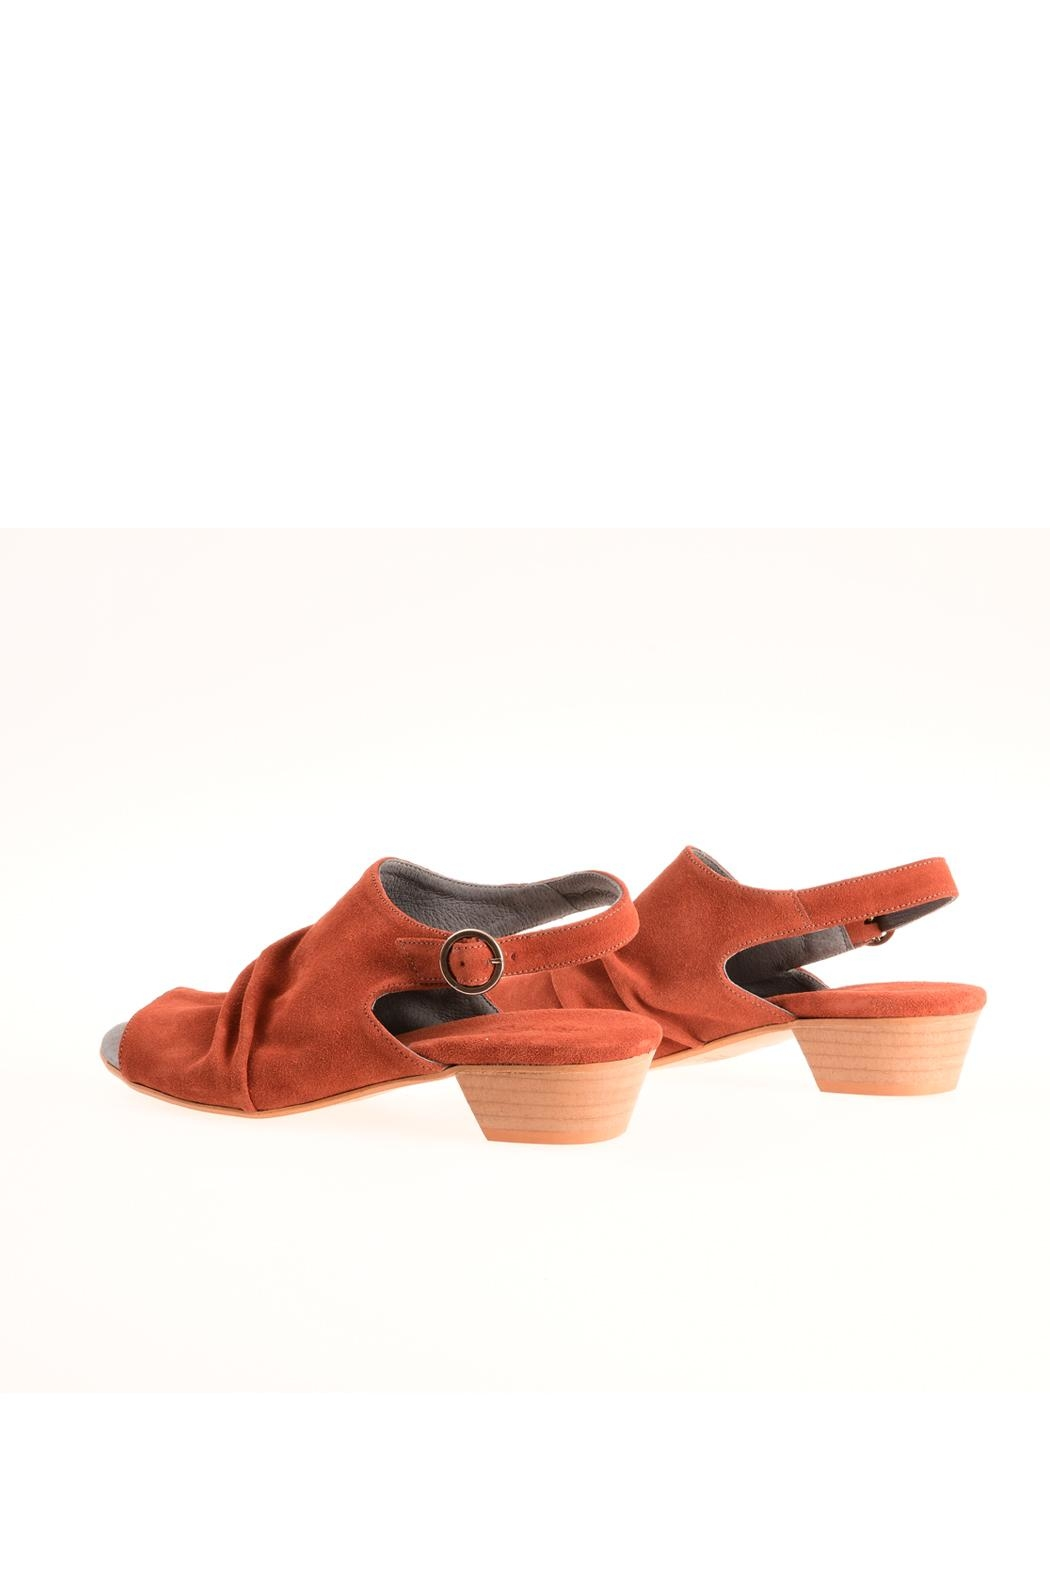 Bottega Bash Orange Suede Sandal - Front Cropped Image